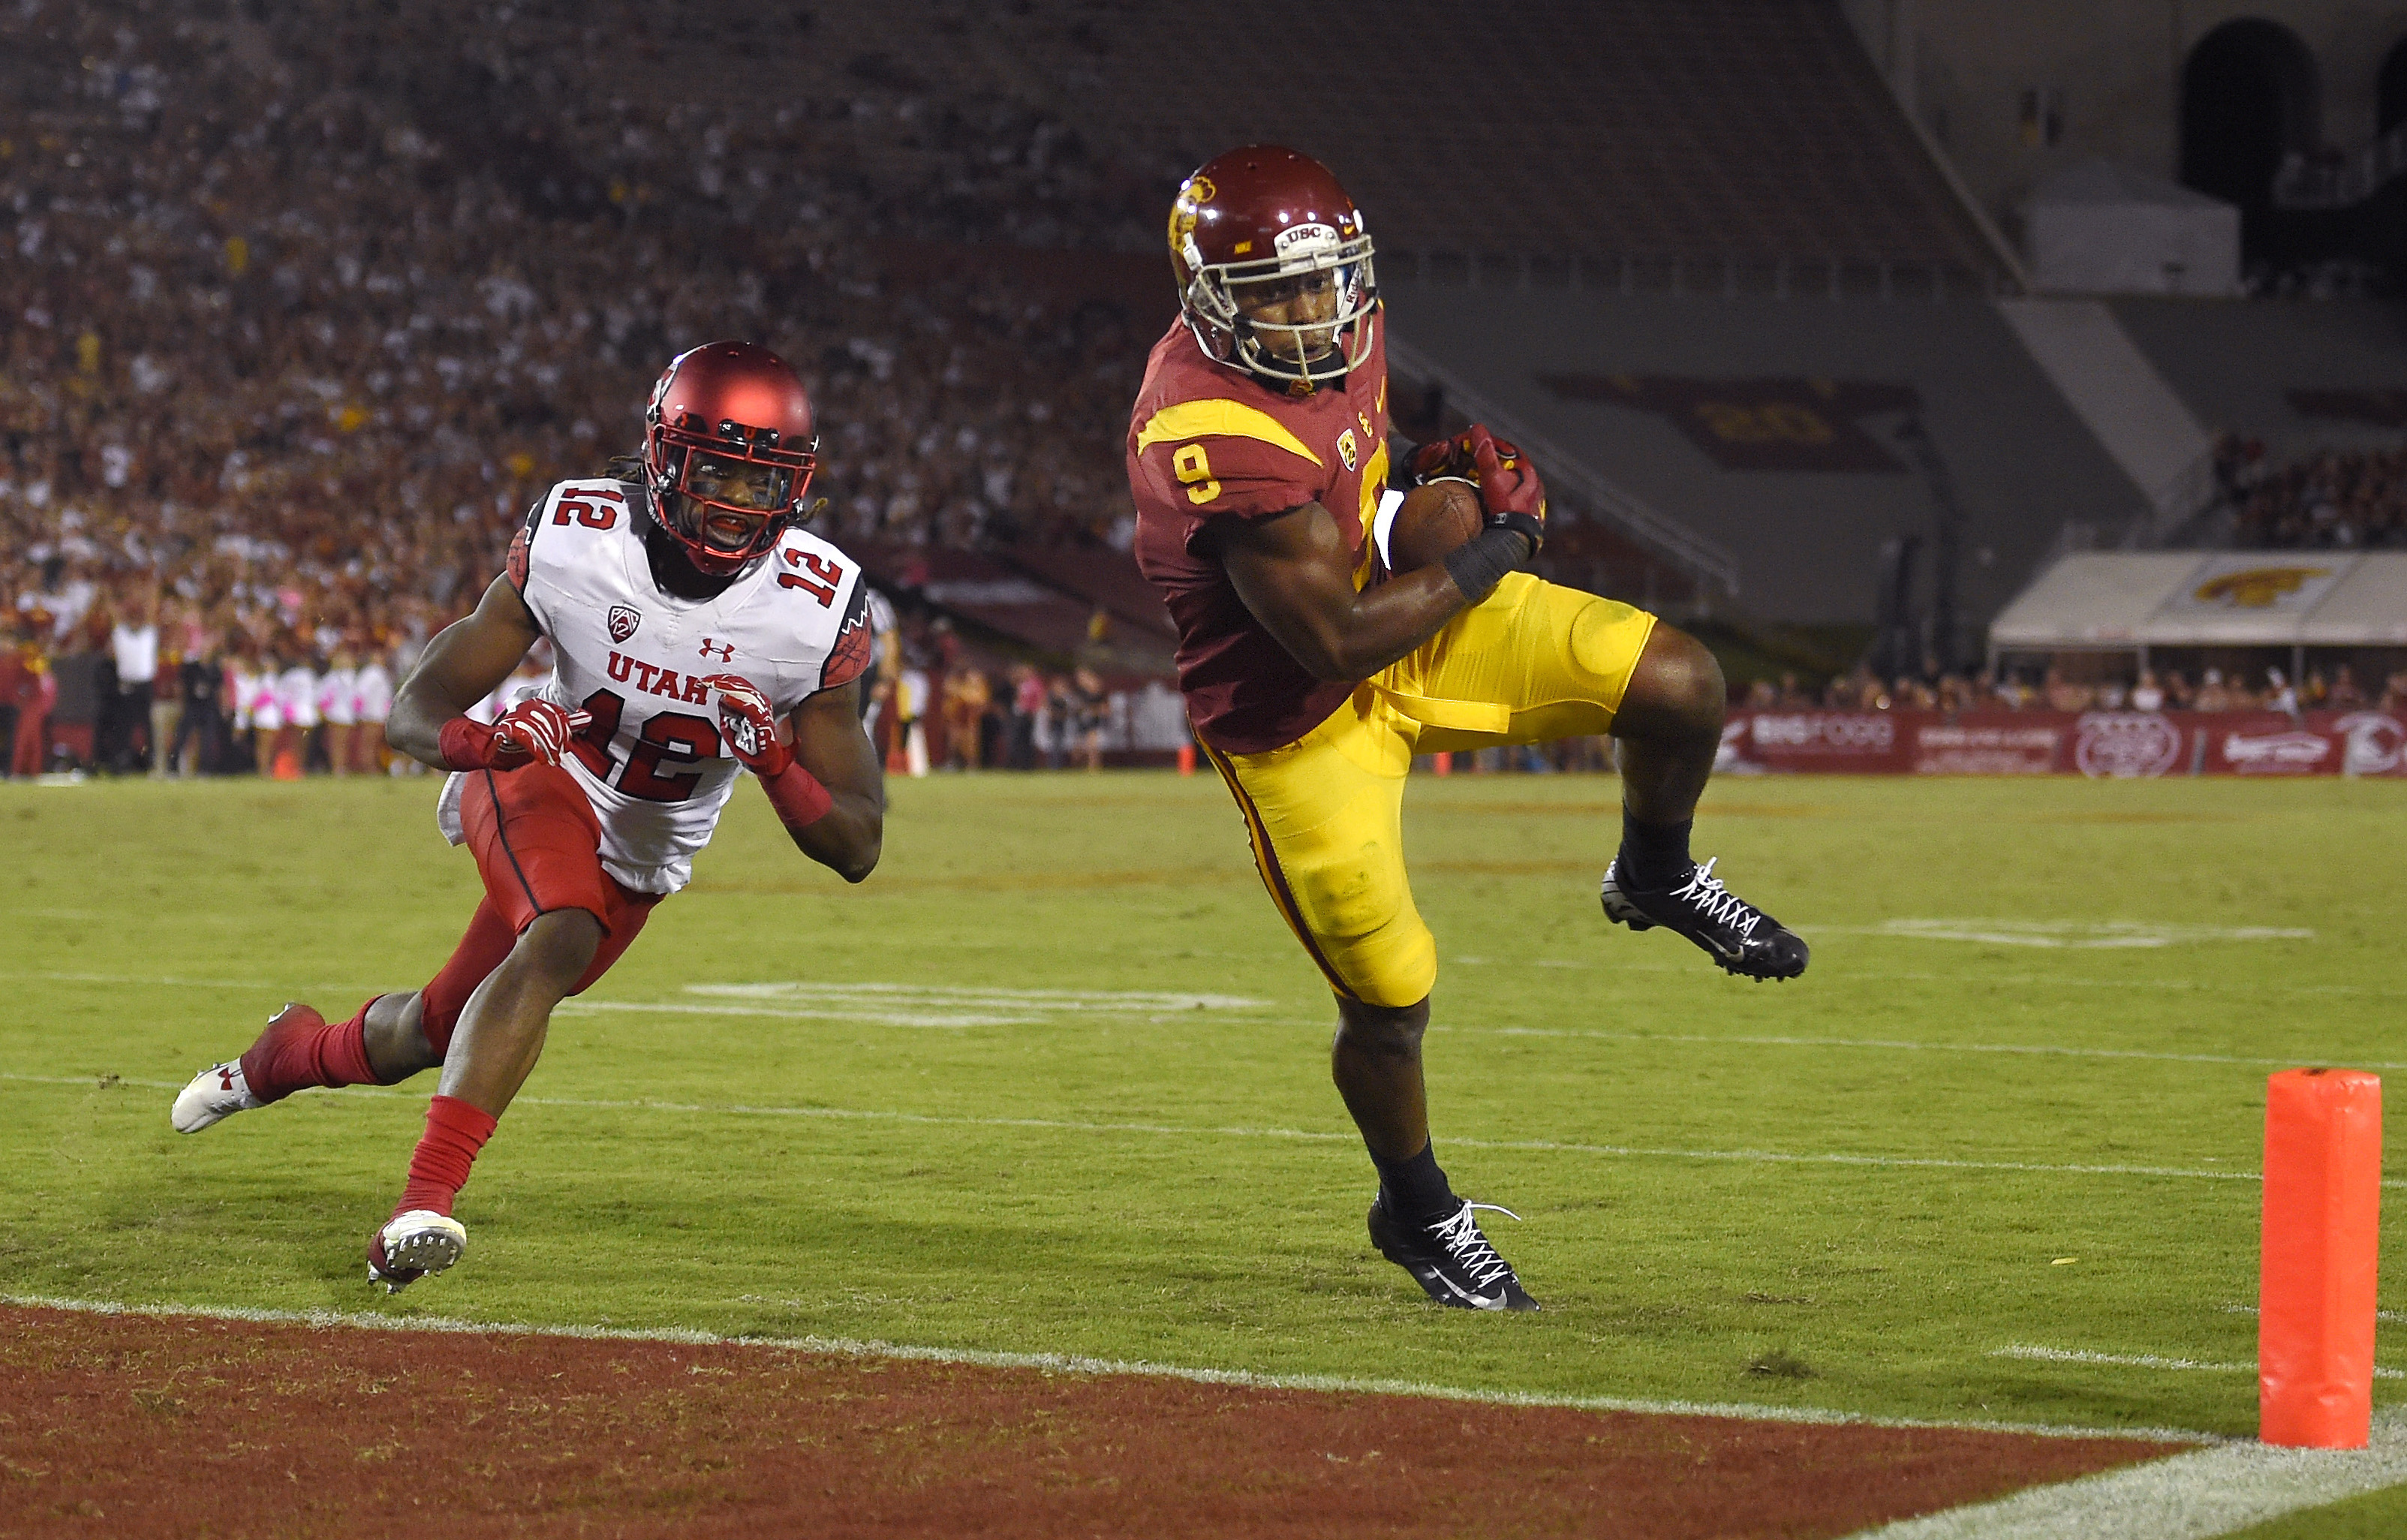 Southern California wide receiver JuJu Smith-Schuster, right, heads in for a touchdown under pressure from Utah defensive back Justin Thomas during the second half of an NCAA college football game, Saturday, Oct. 24, 2015, in Los Angeles. Southern Califor